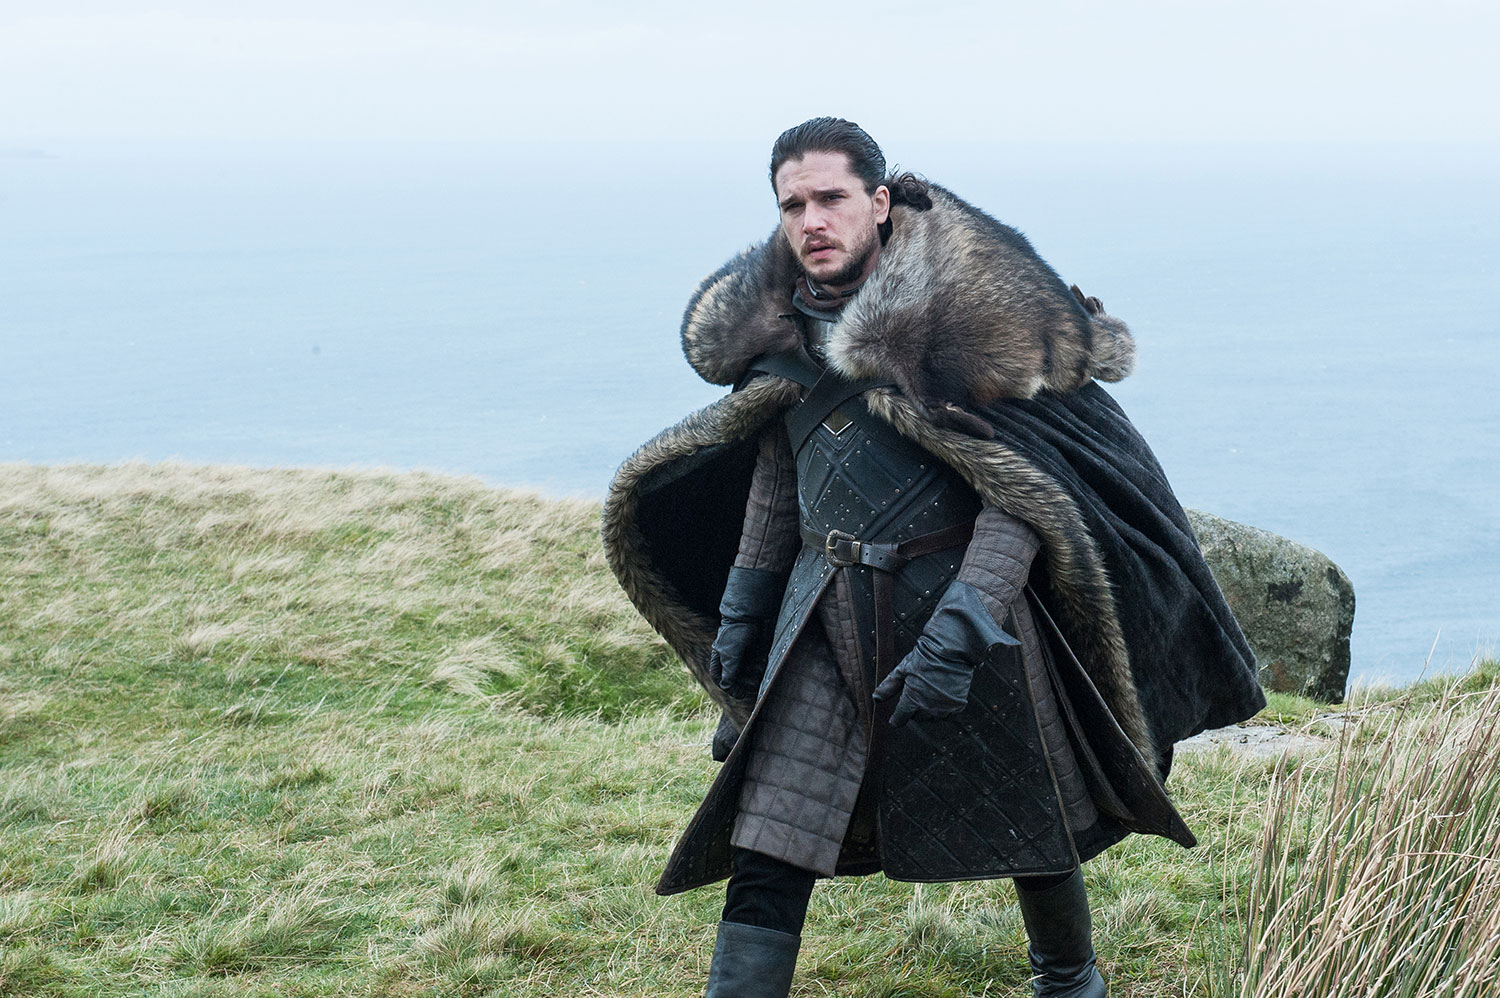 IKEA Just Made It Way Easier To Make Your Own Jon Snow